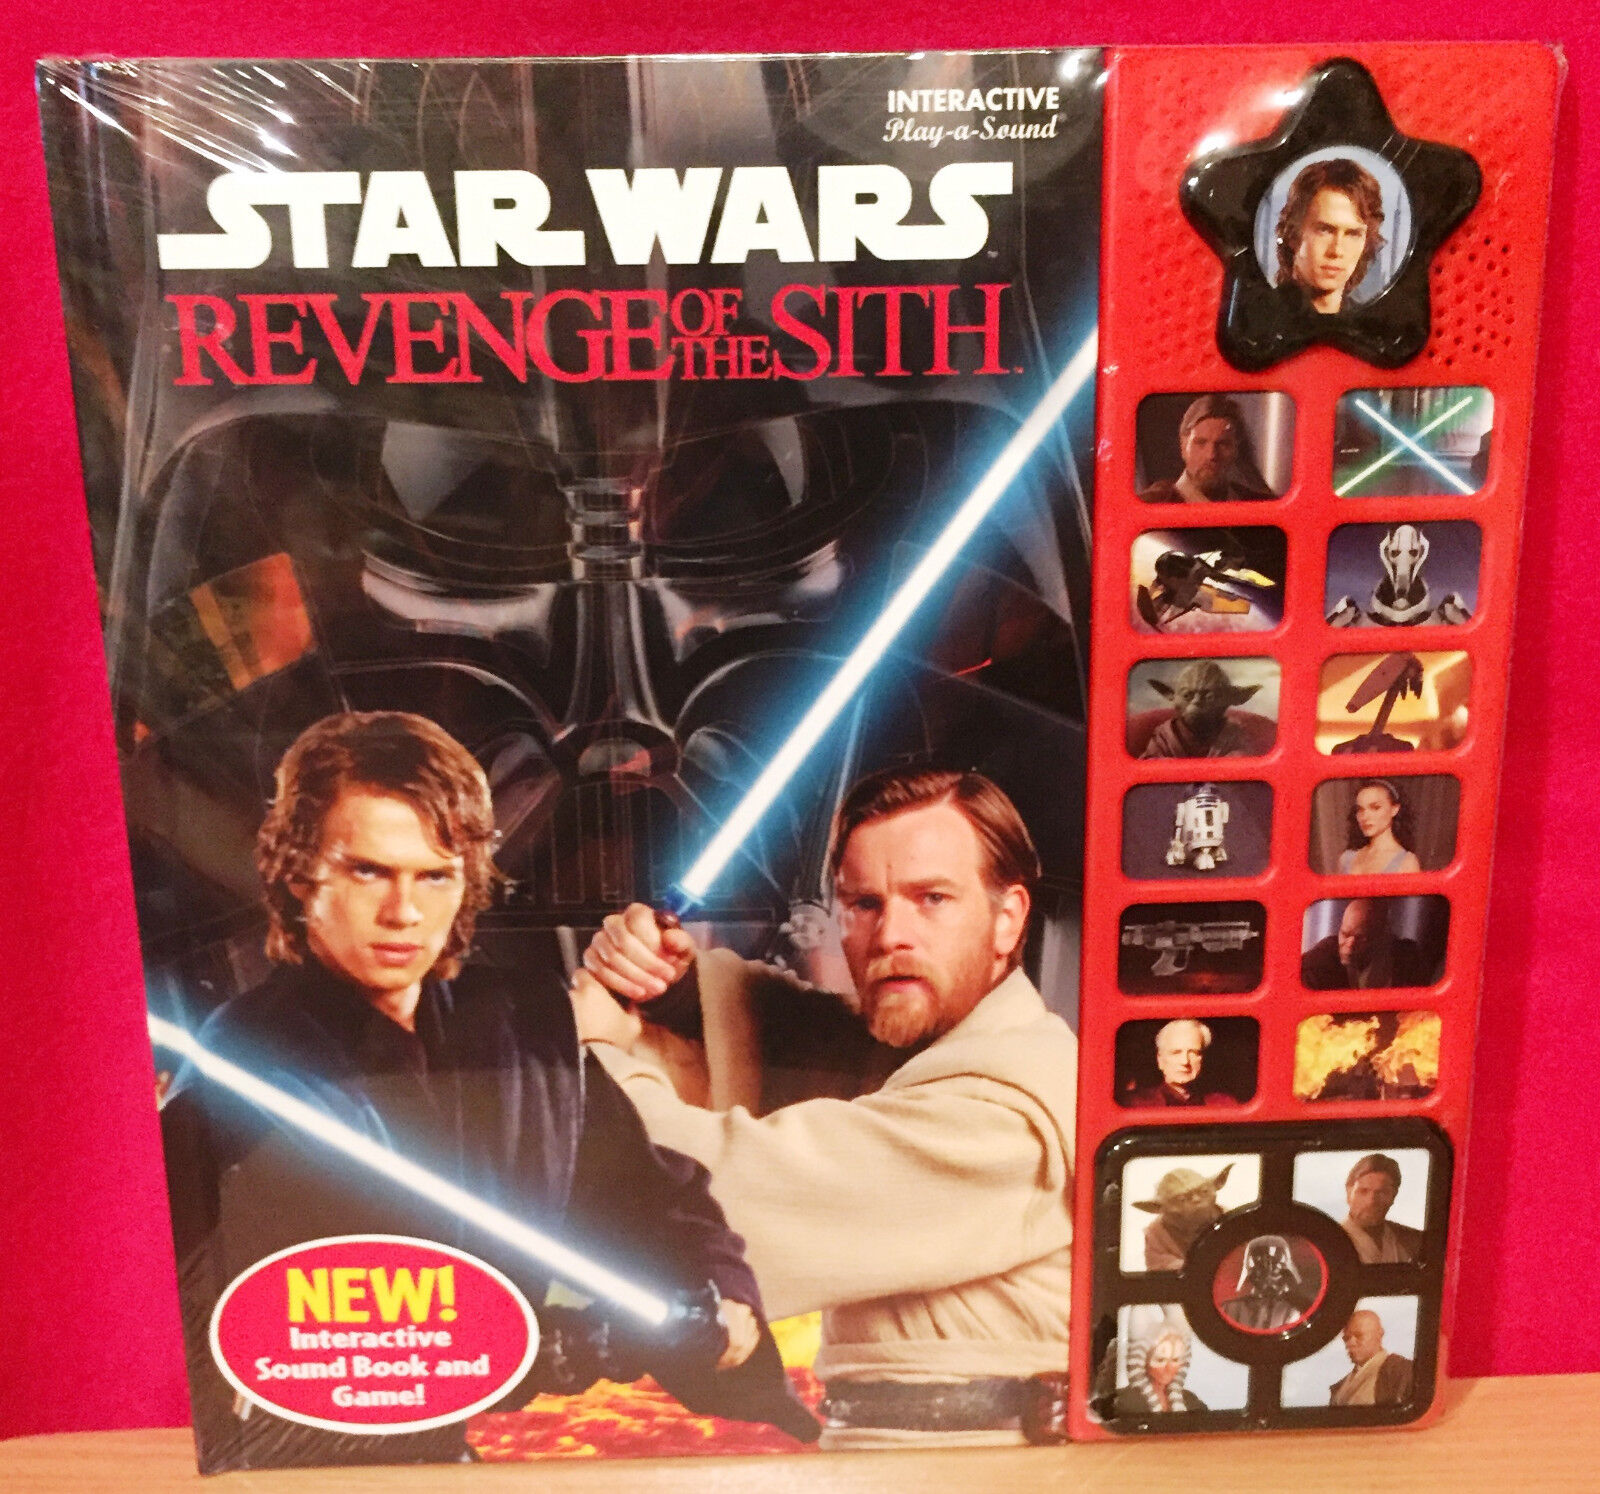 Star Wars Revenge Of The Sith Interactive Play A Sound Book 42799734872 Ebay